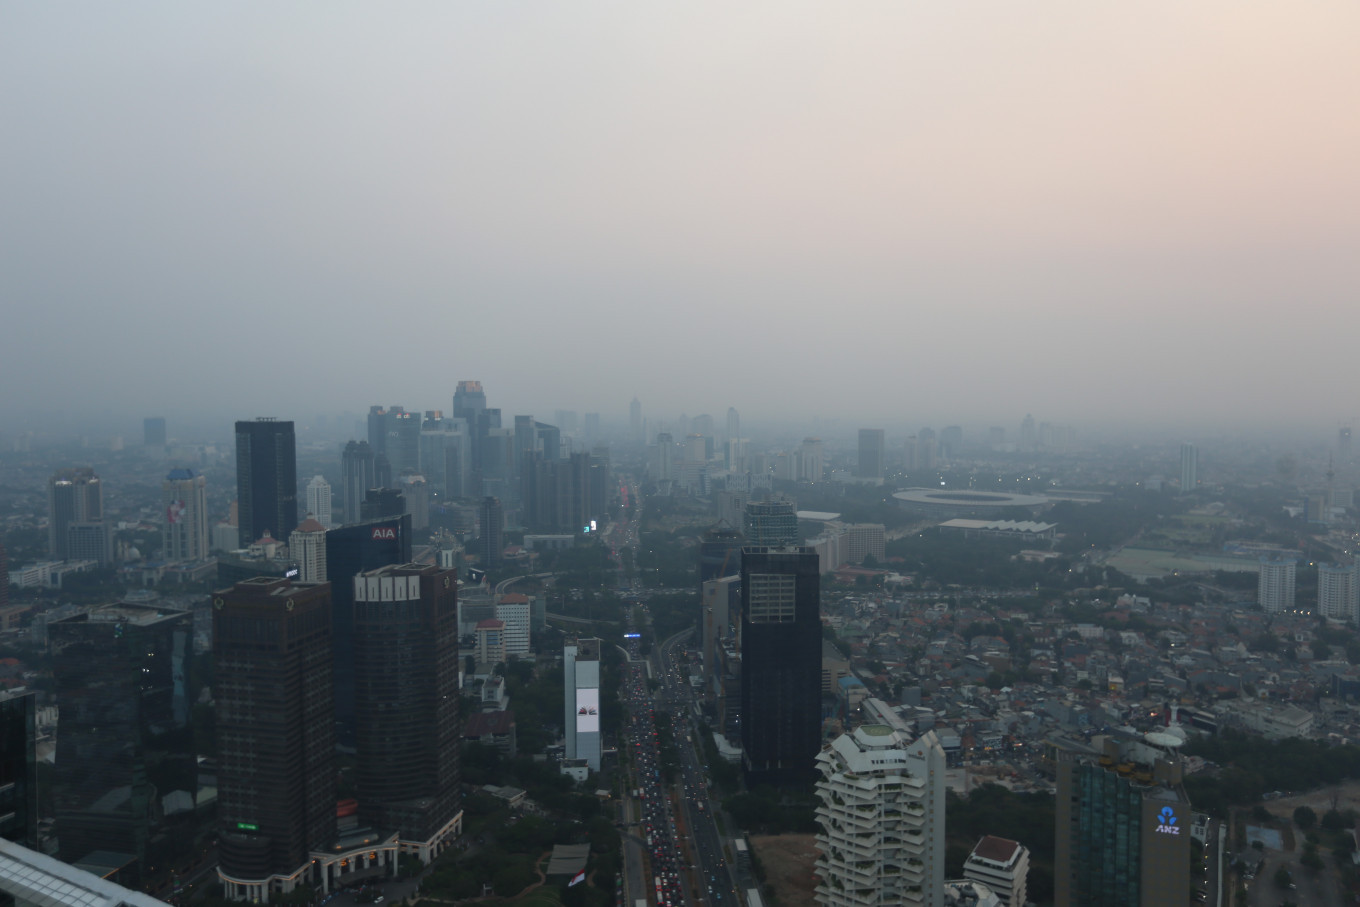 Air pollution increases risk of premature death